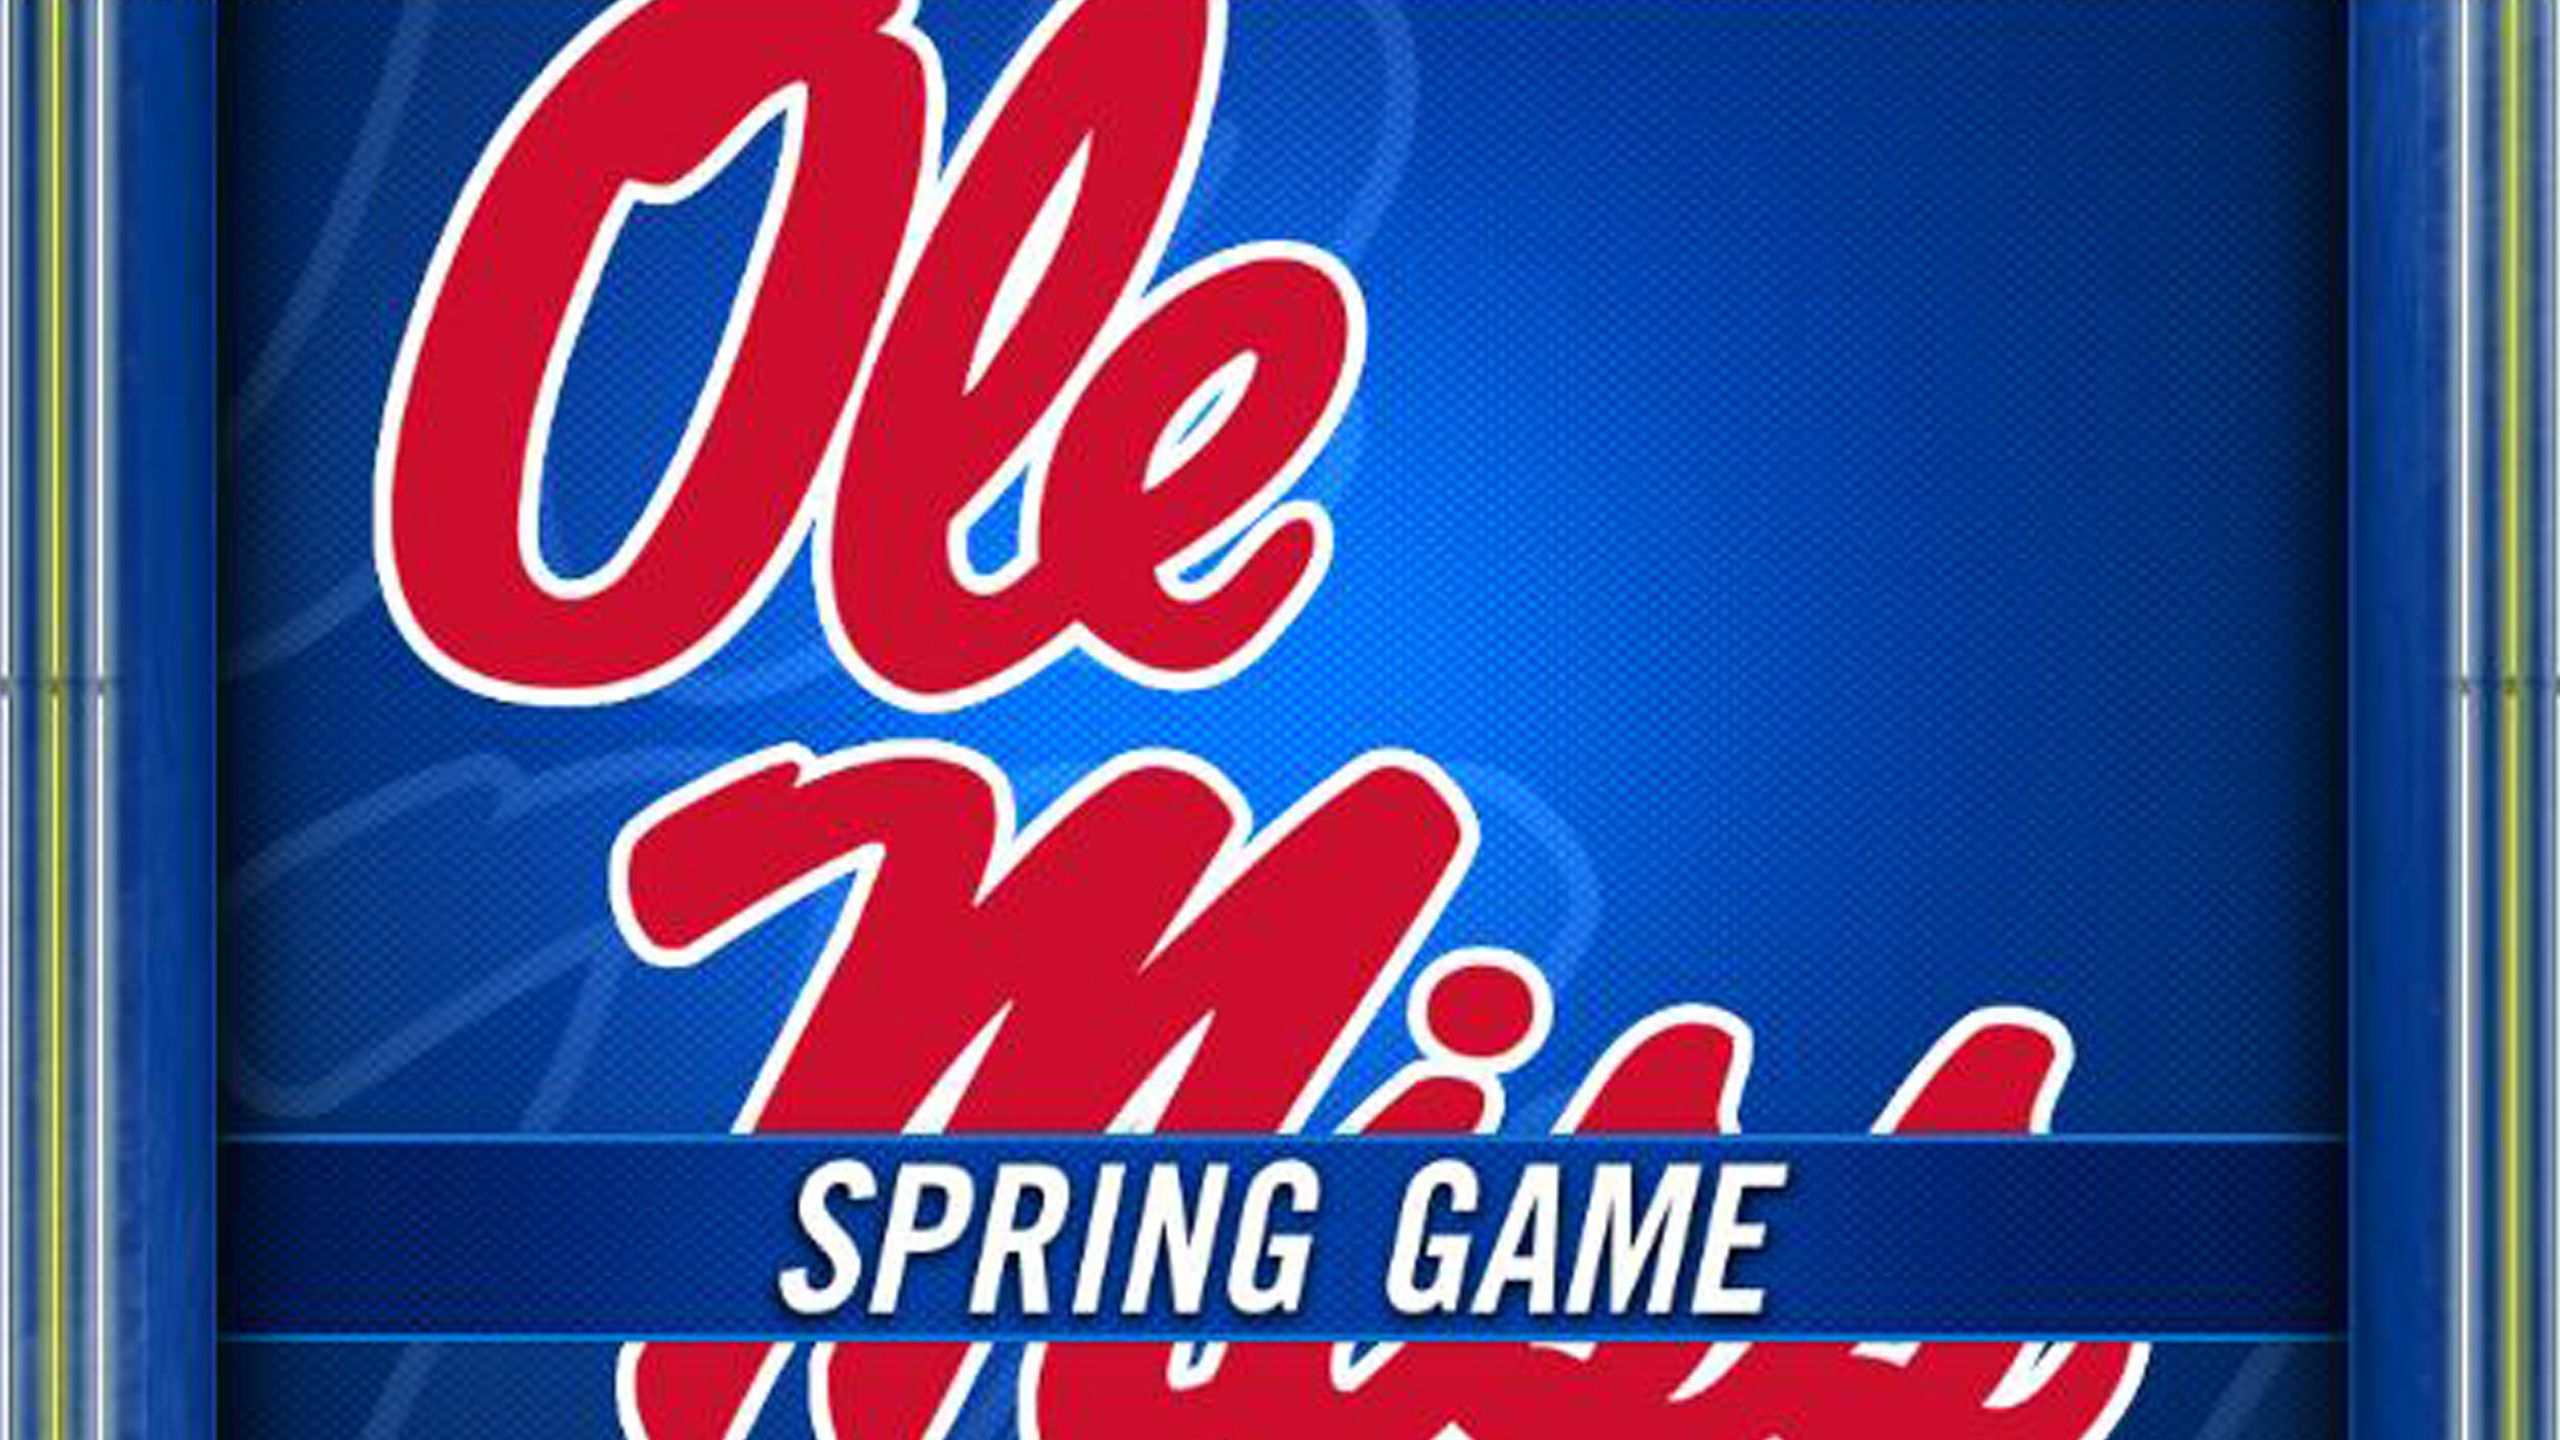 Ole Miss Spring Game